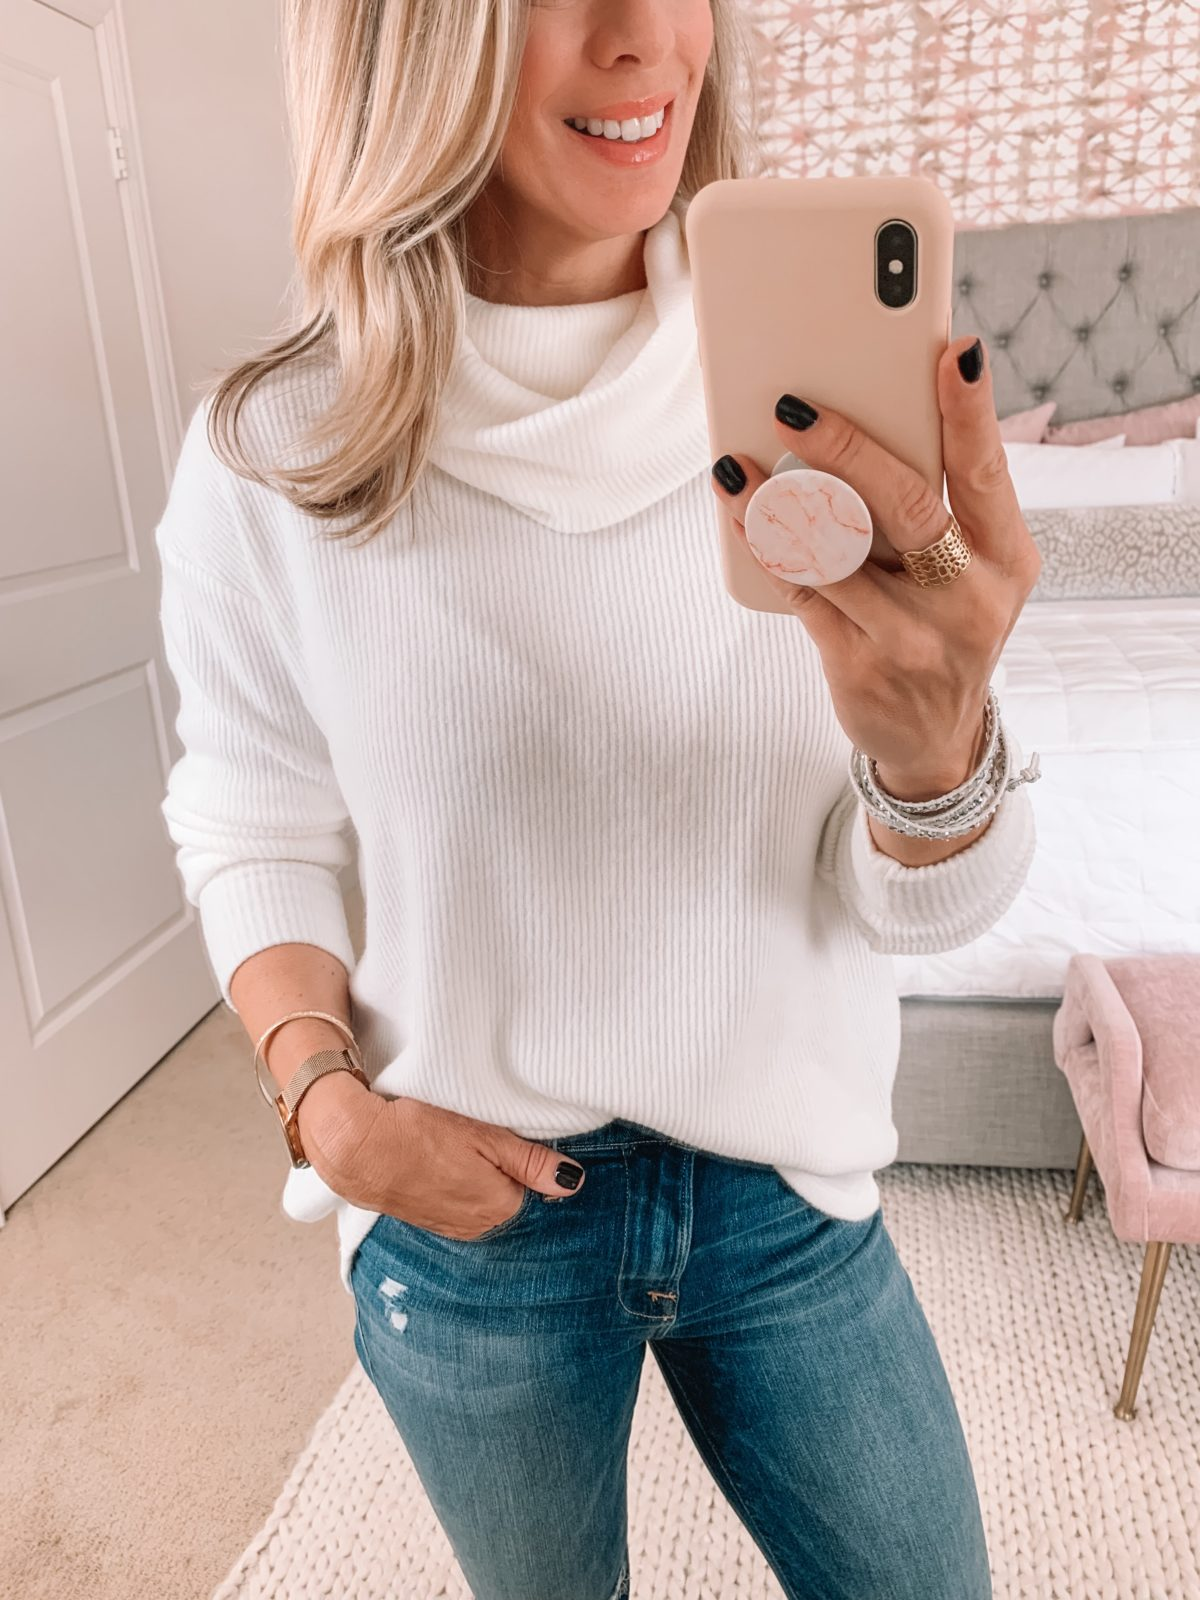 jeans and sweater outfit